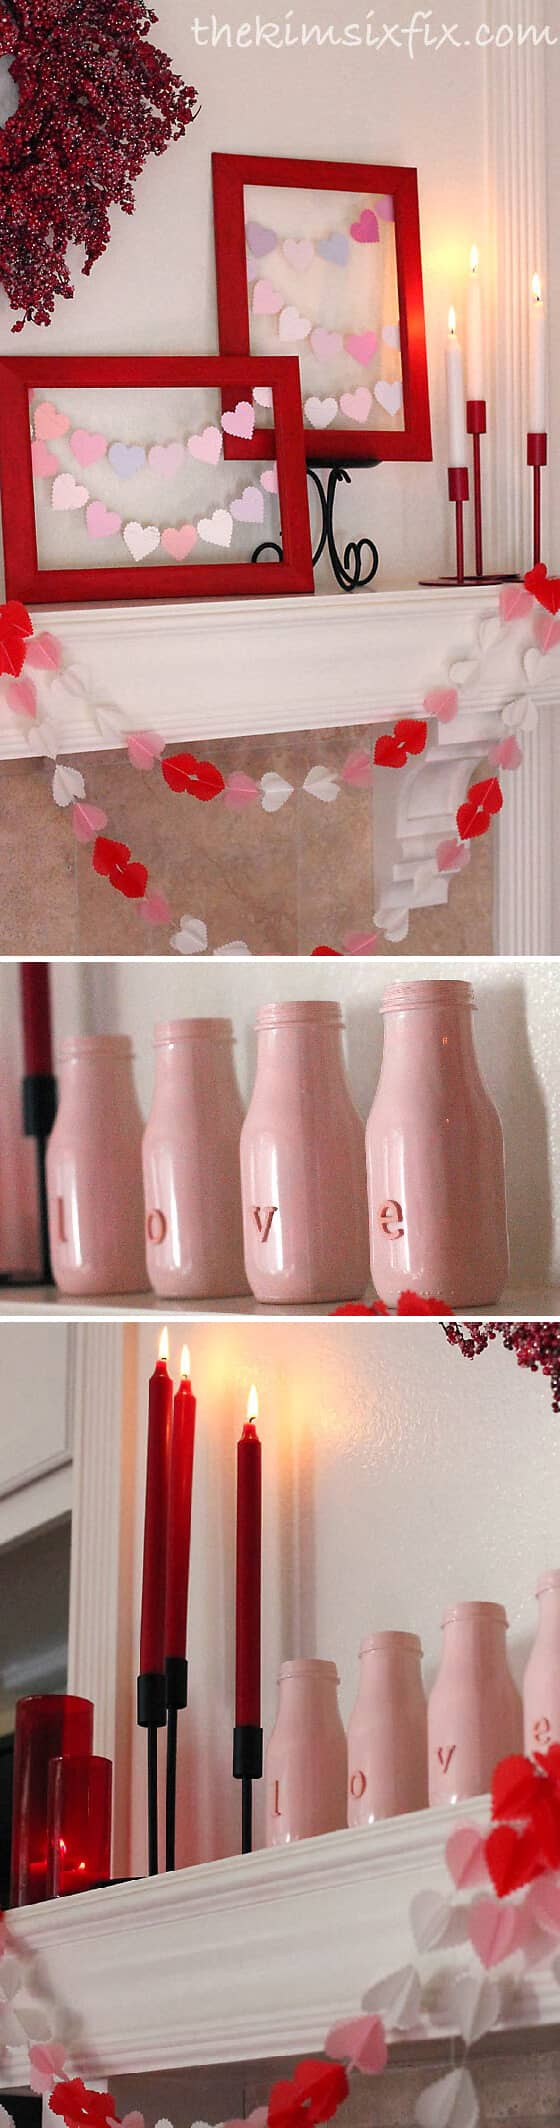 Love-Themed Valentine's Day Decoration Ideas